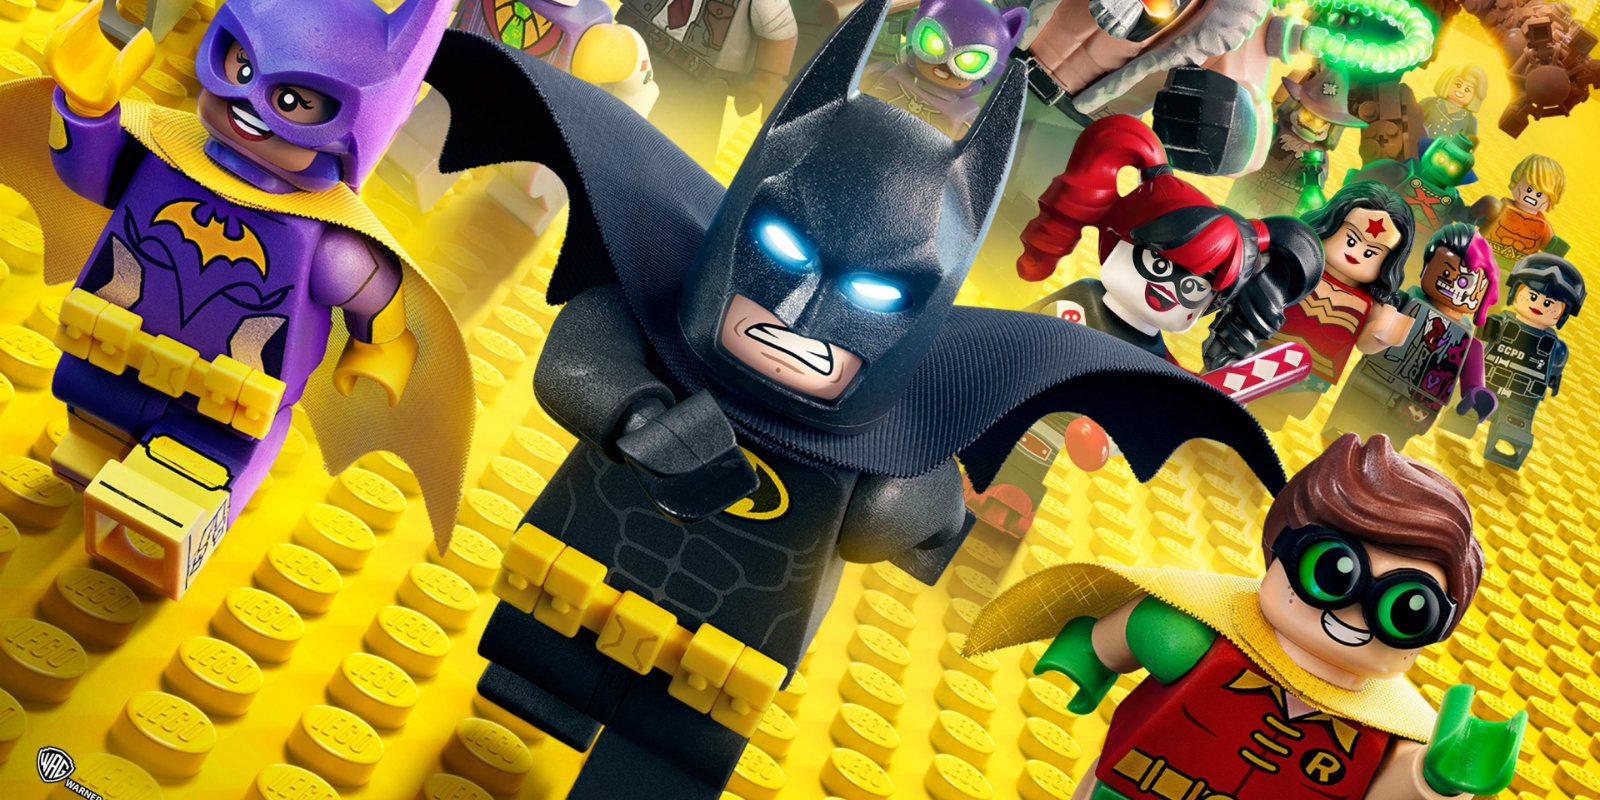 Lego batman movie poster characters